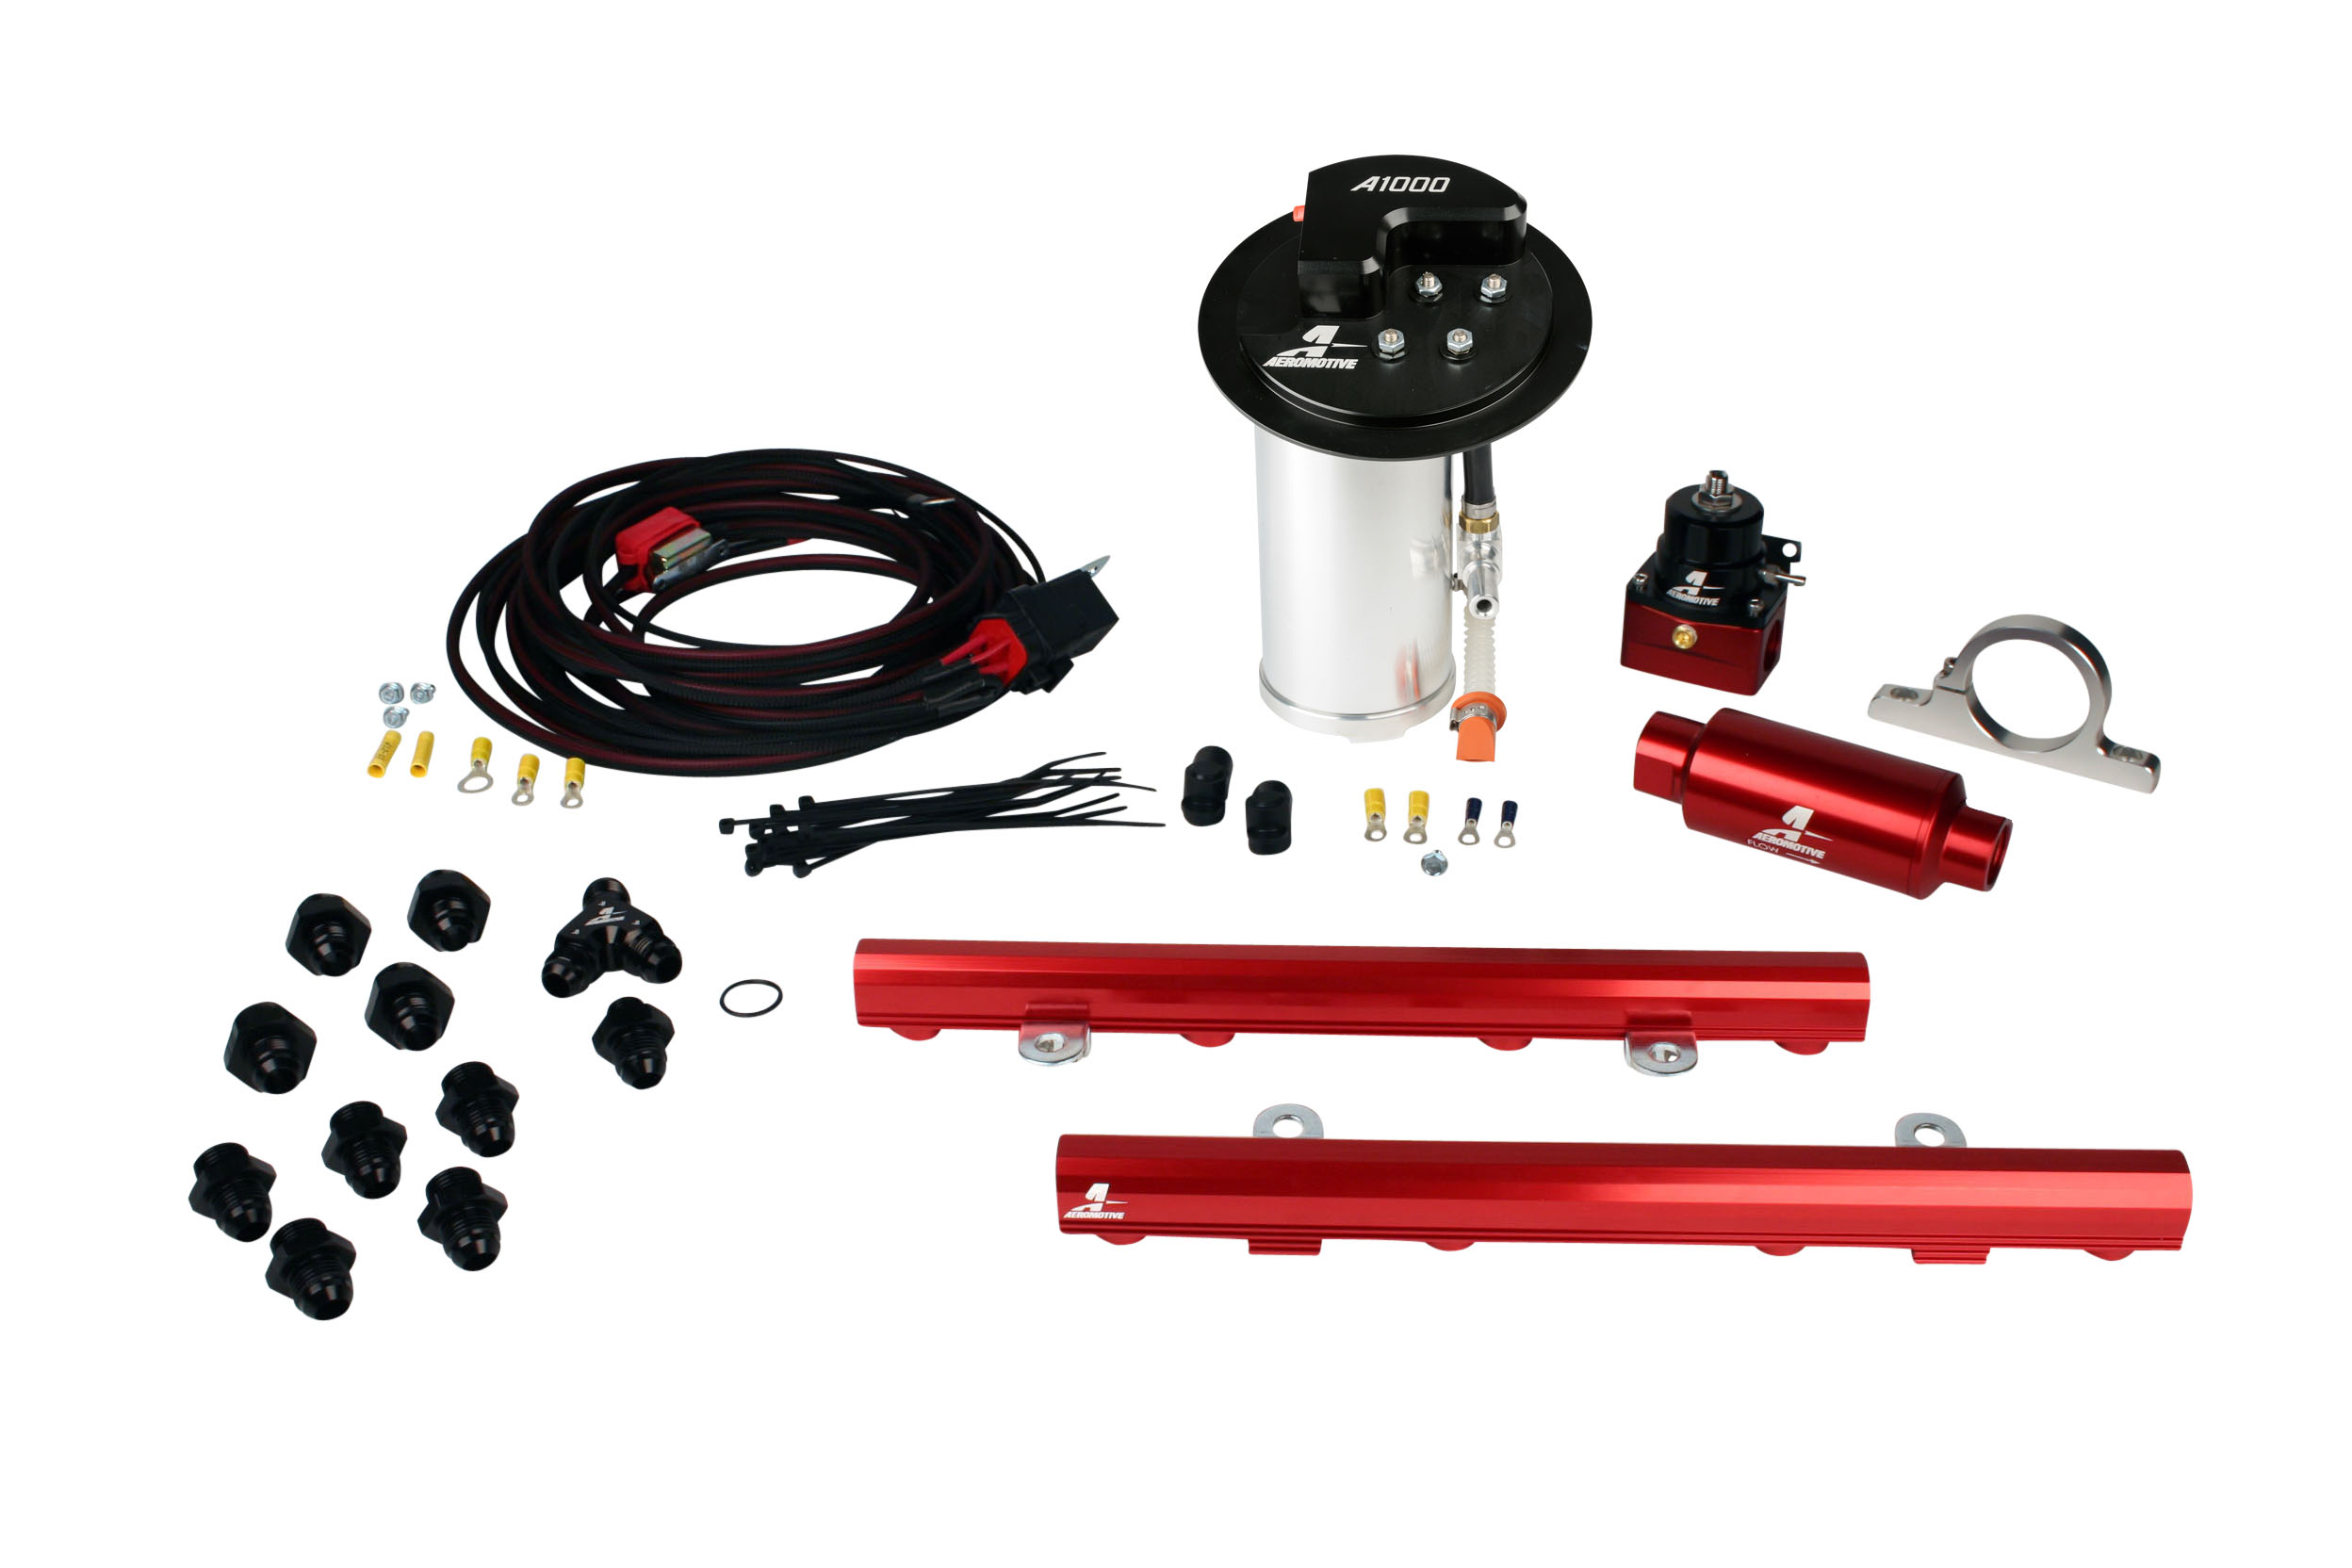 2010-2017 Ford Mustang GT Aeromotive Stealth A1000 Race Fuel System w/5.0L Coyote 4 Valve Fuel Rail